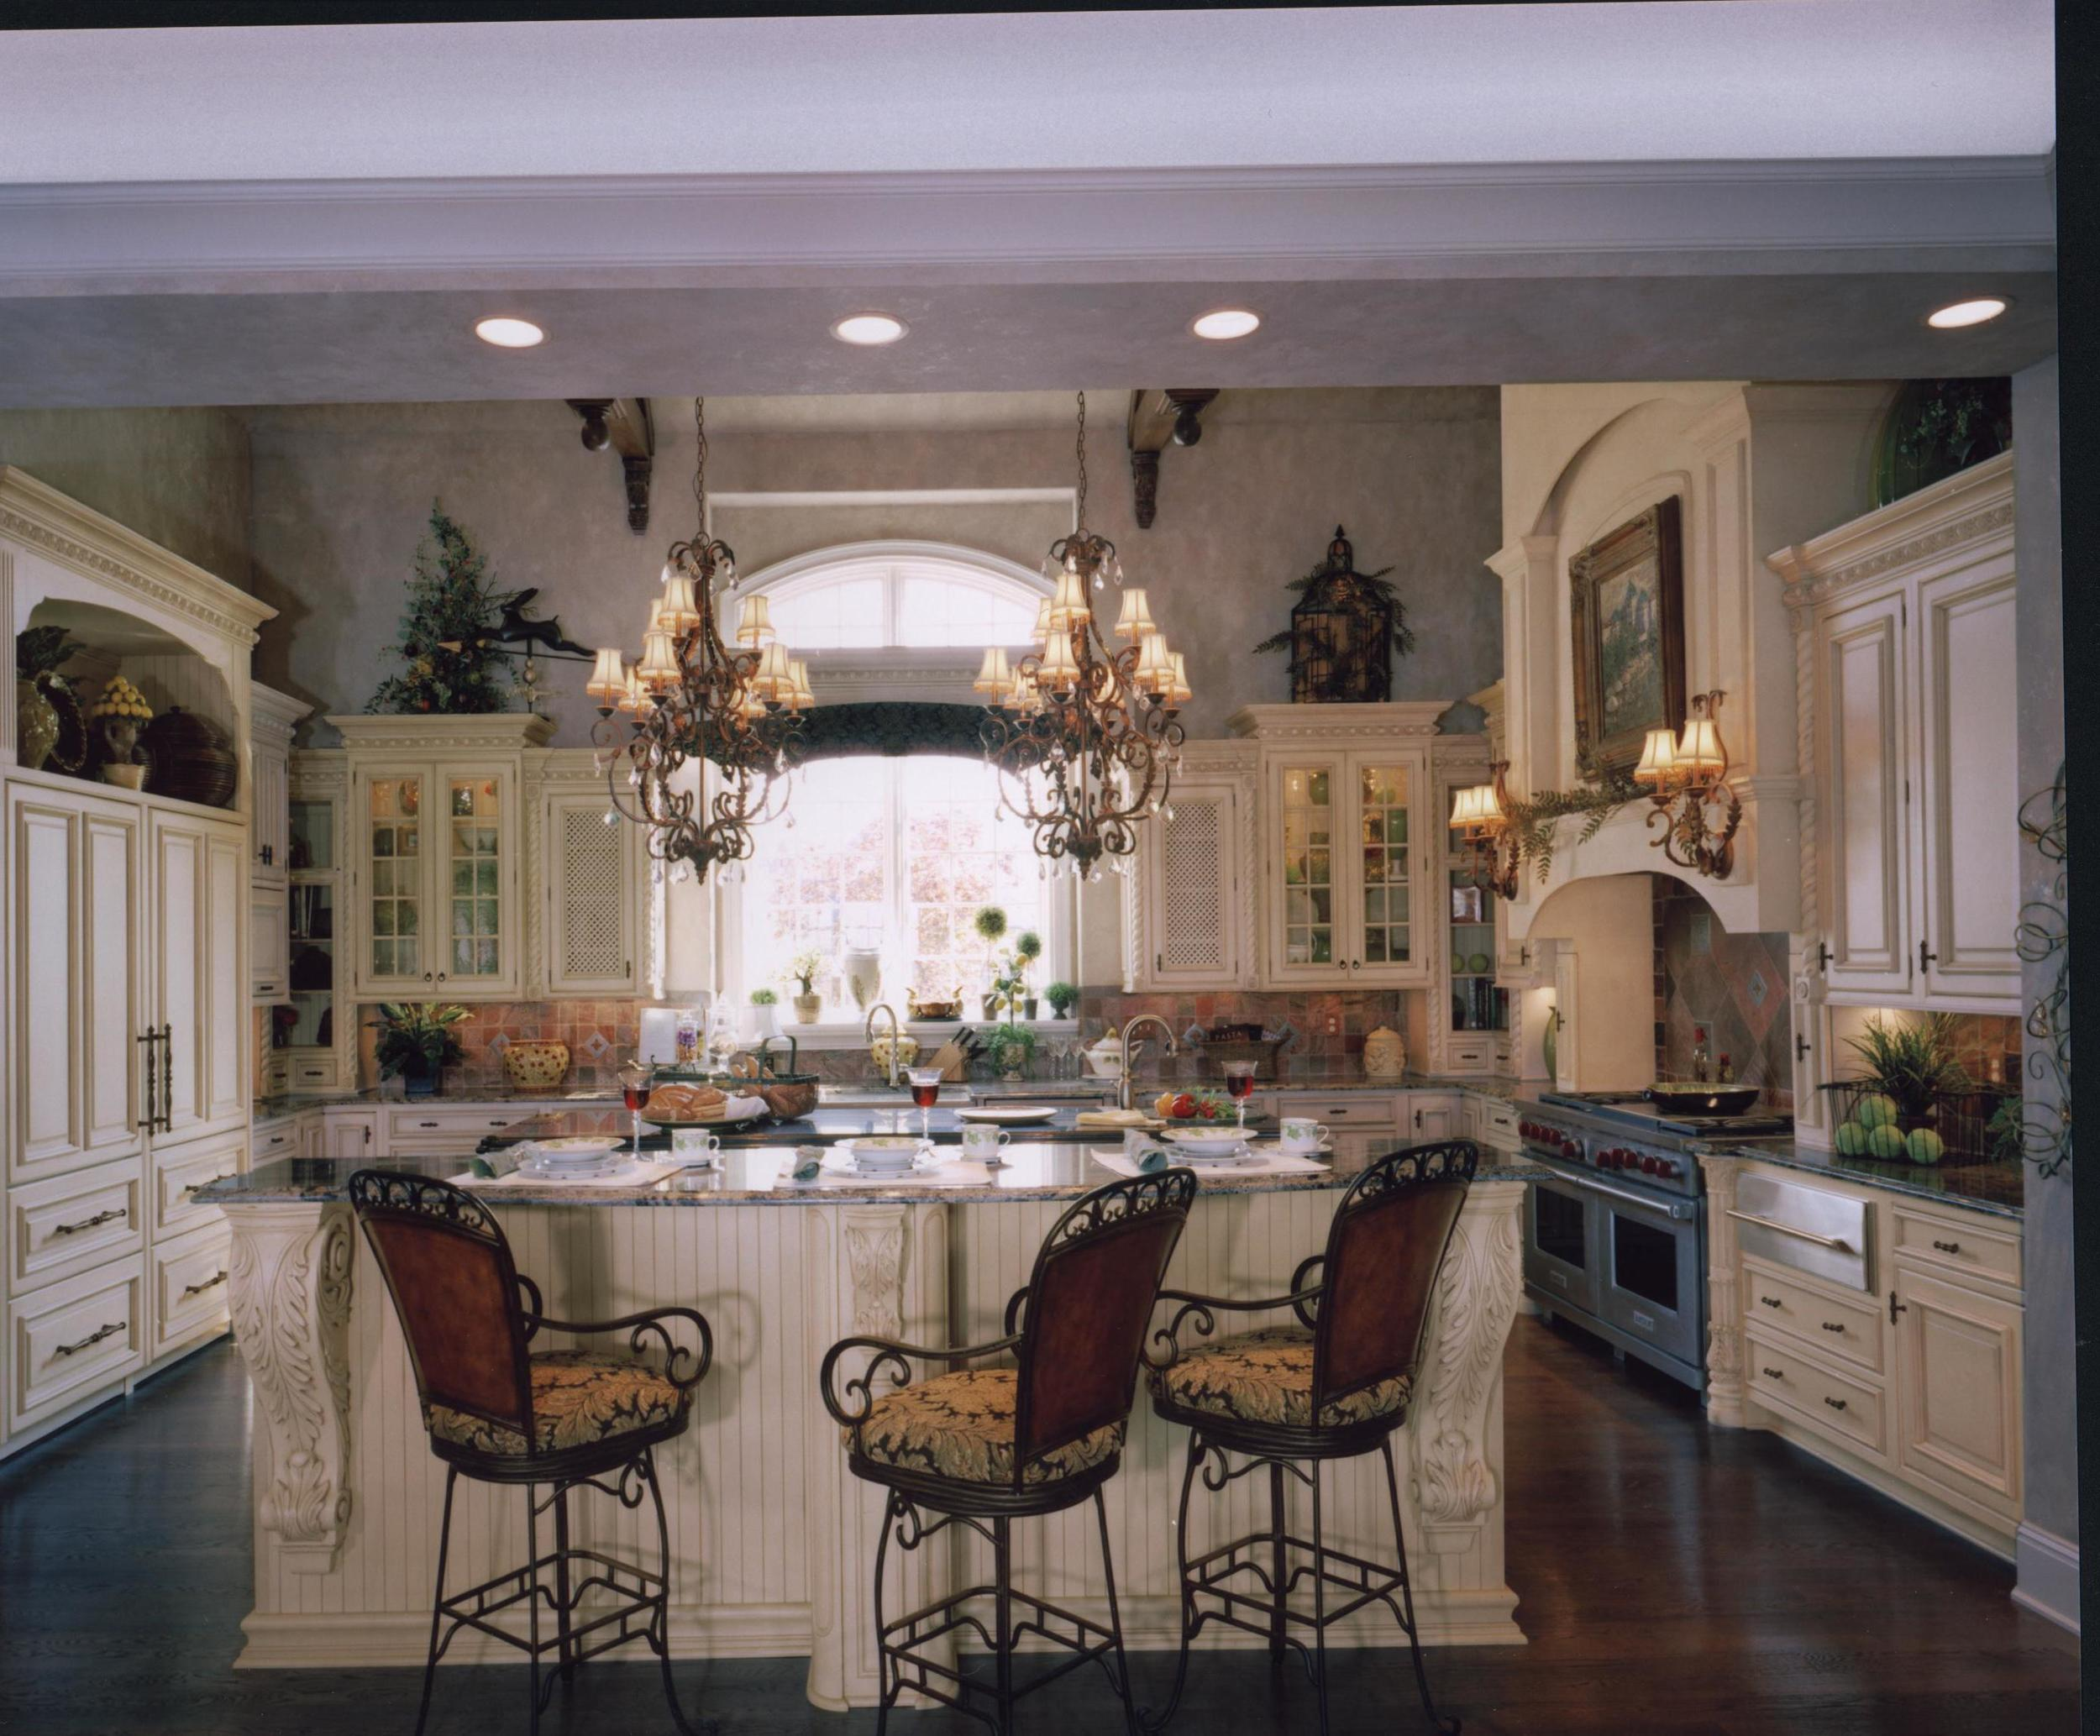 kitchen (25).jpg